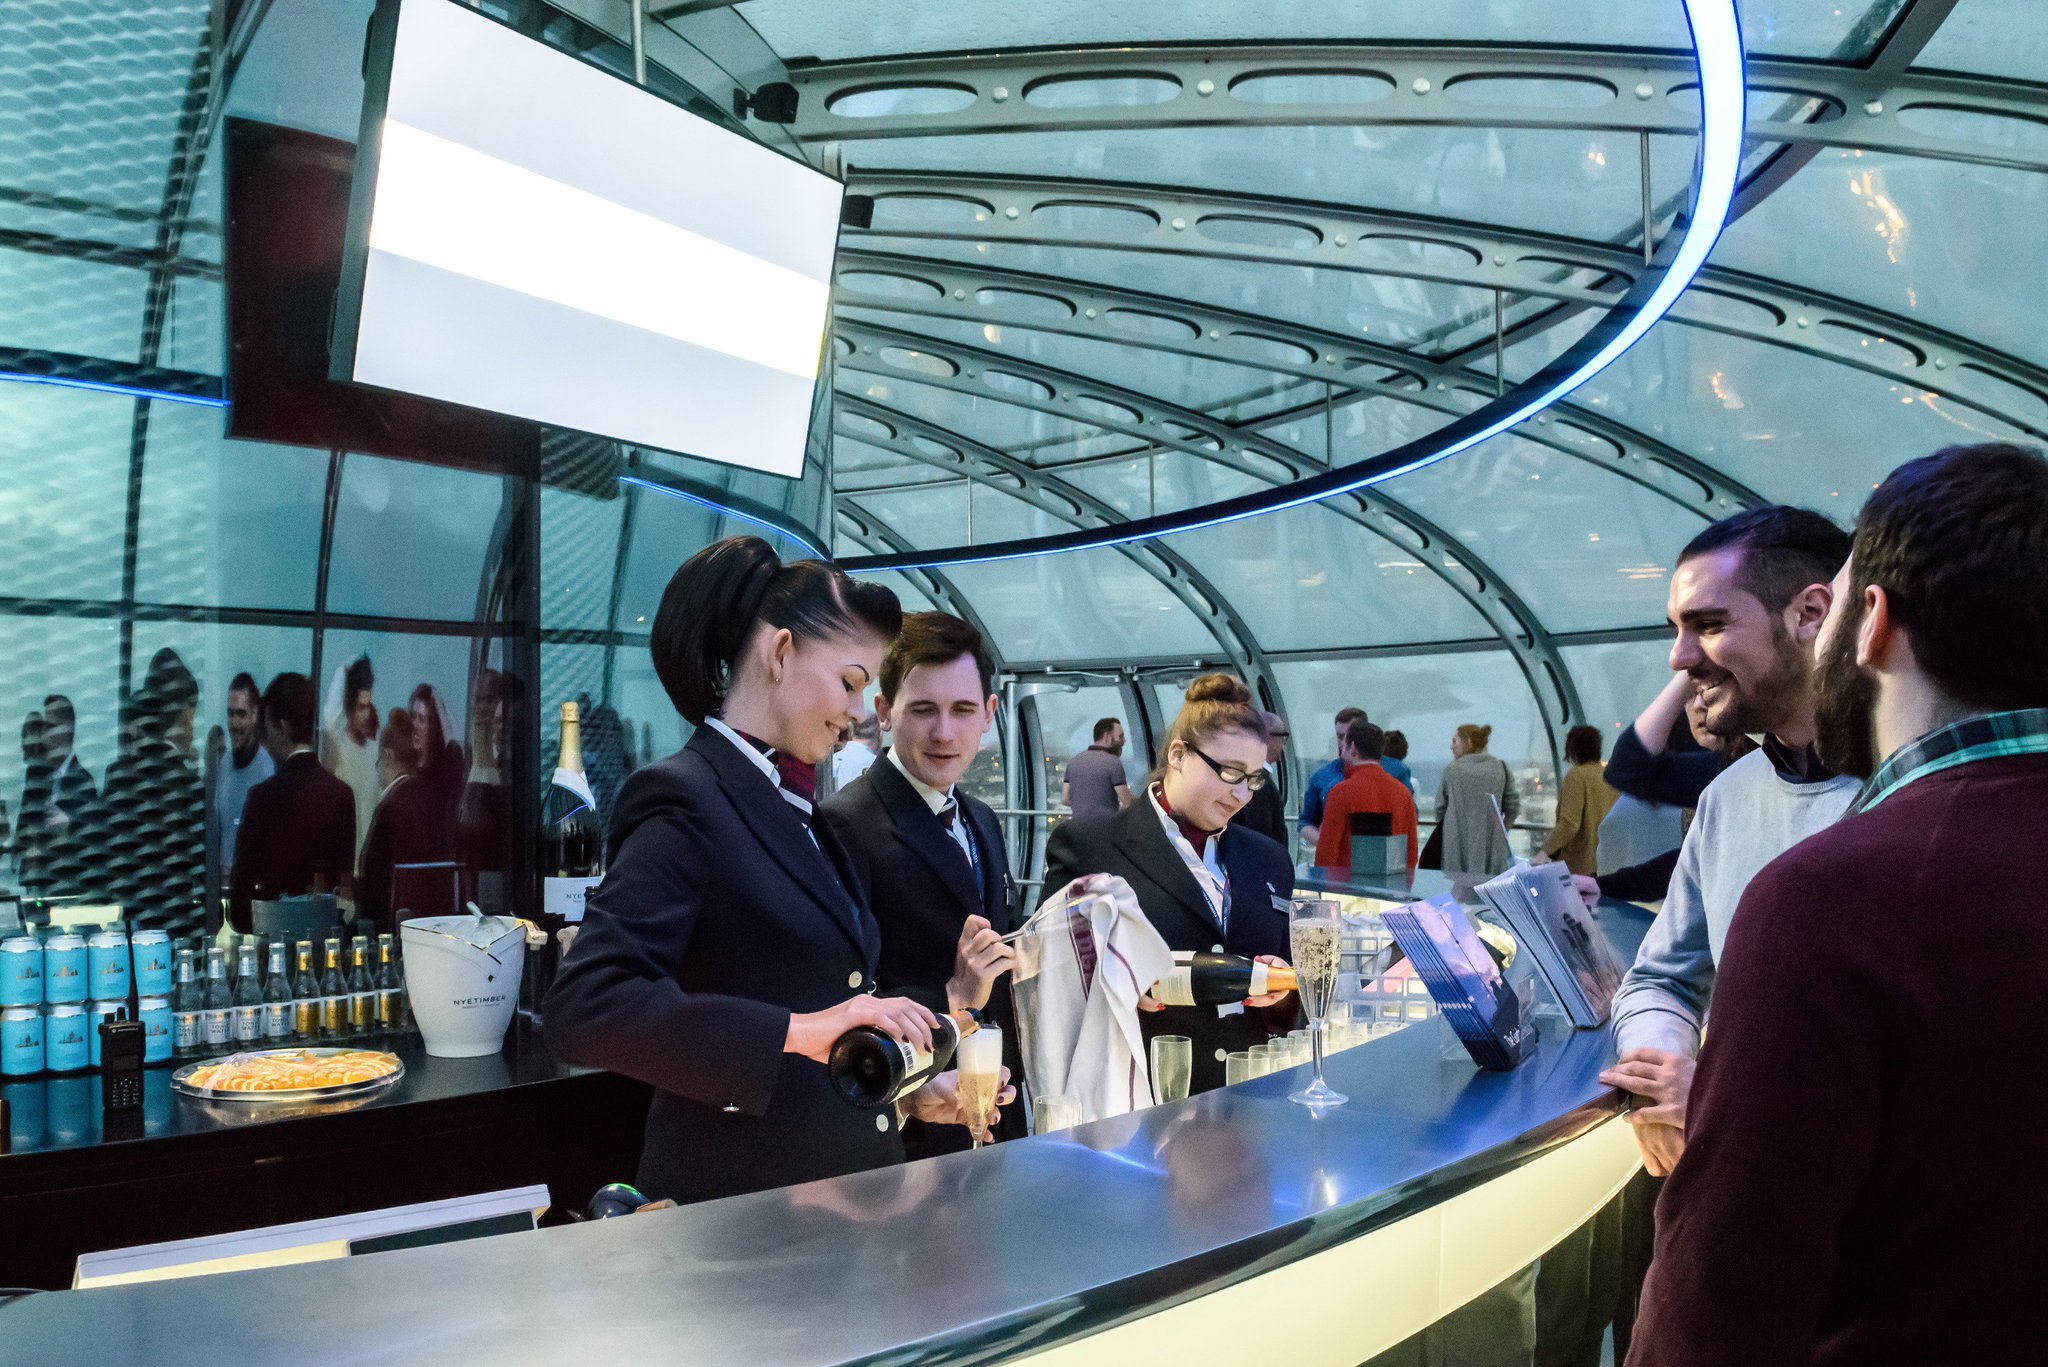 Taking over the British Airways i360 in Brighton for Makemedia's 10th Birthday Party